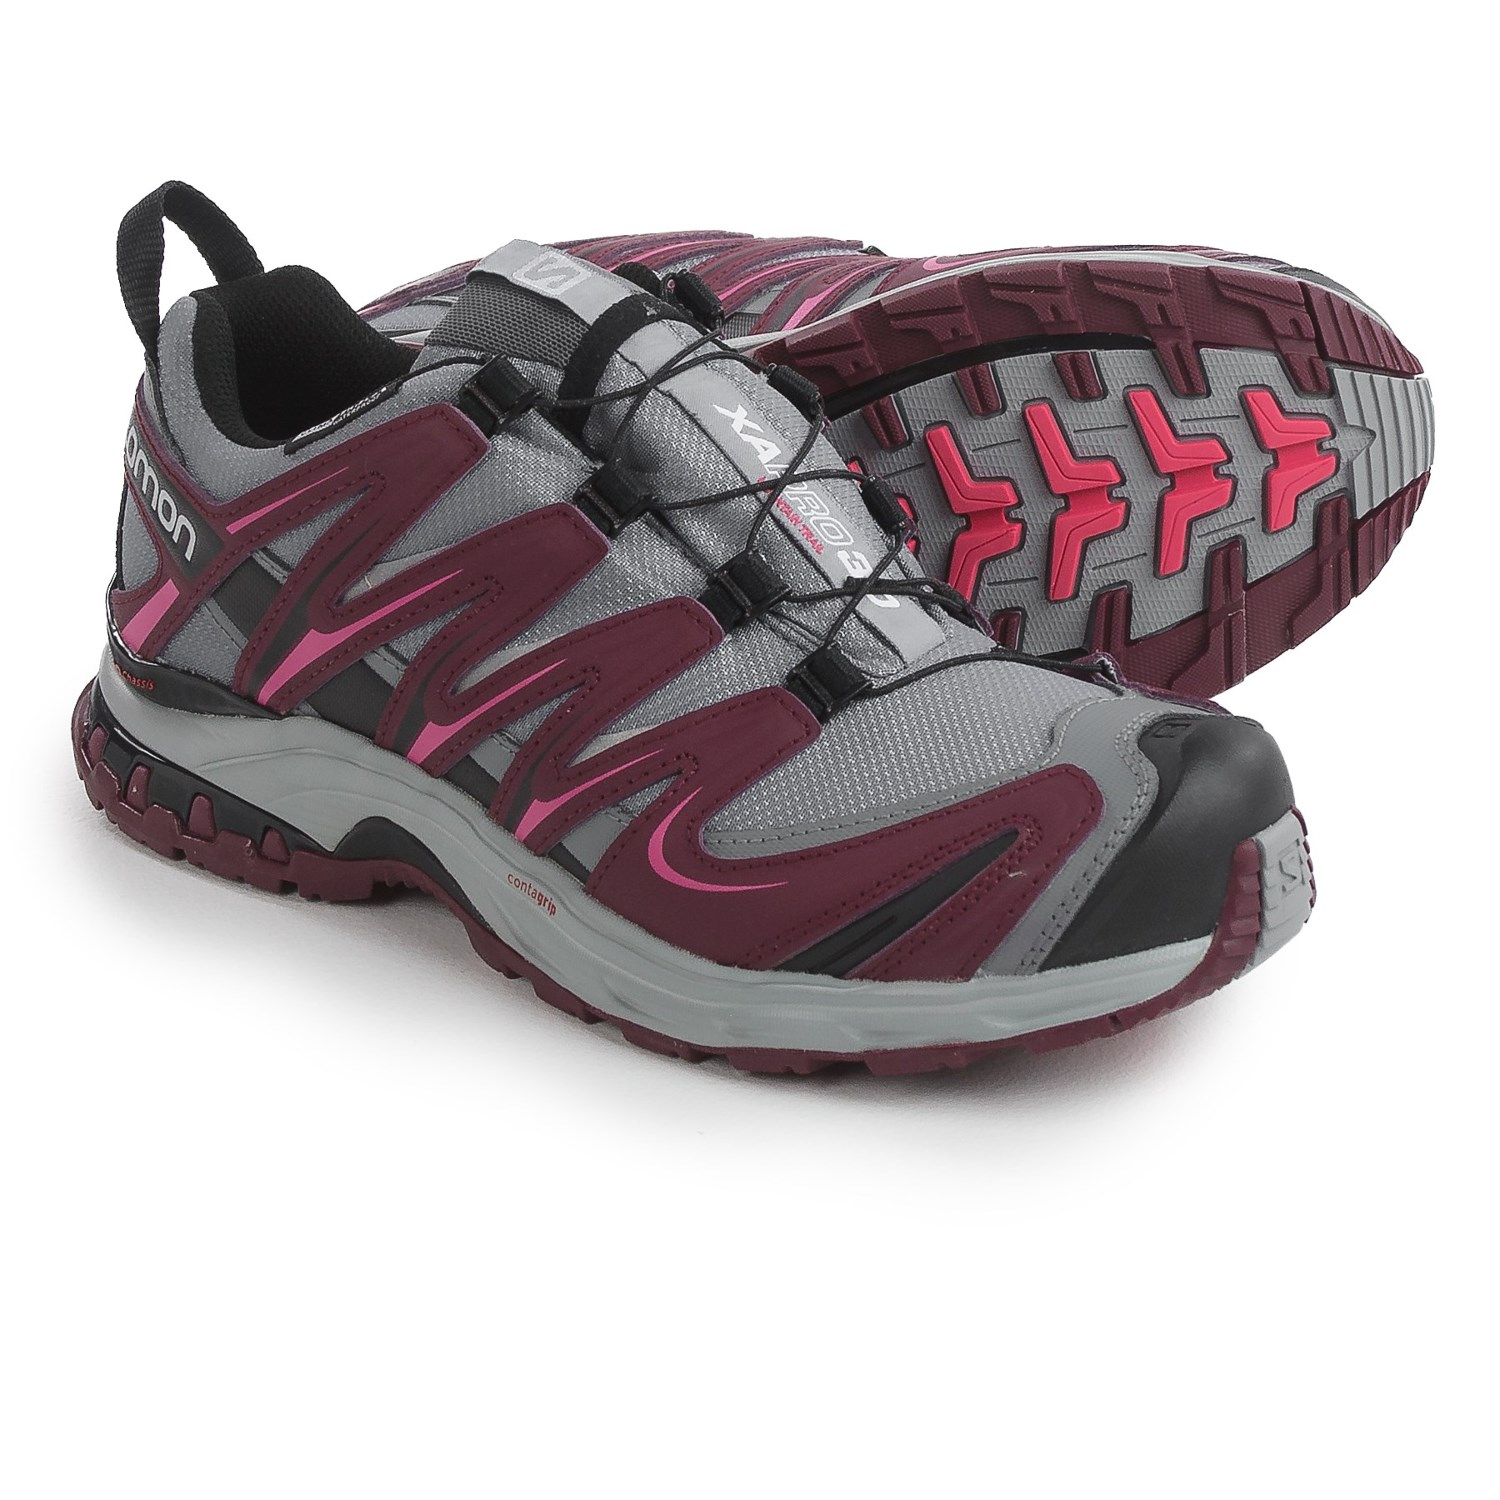 Salomon Trail Running Shoes Waterproof Women